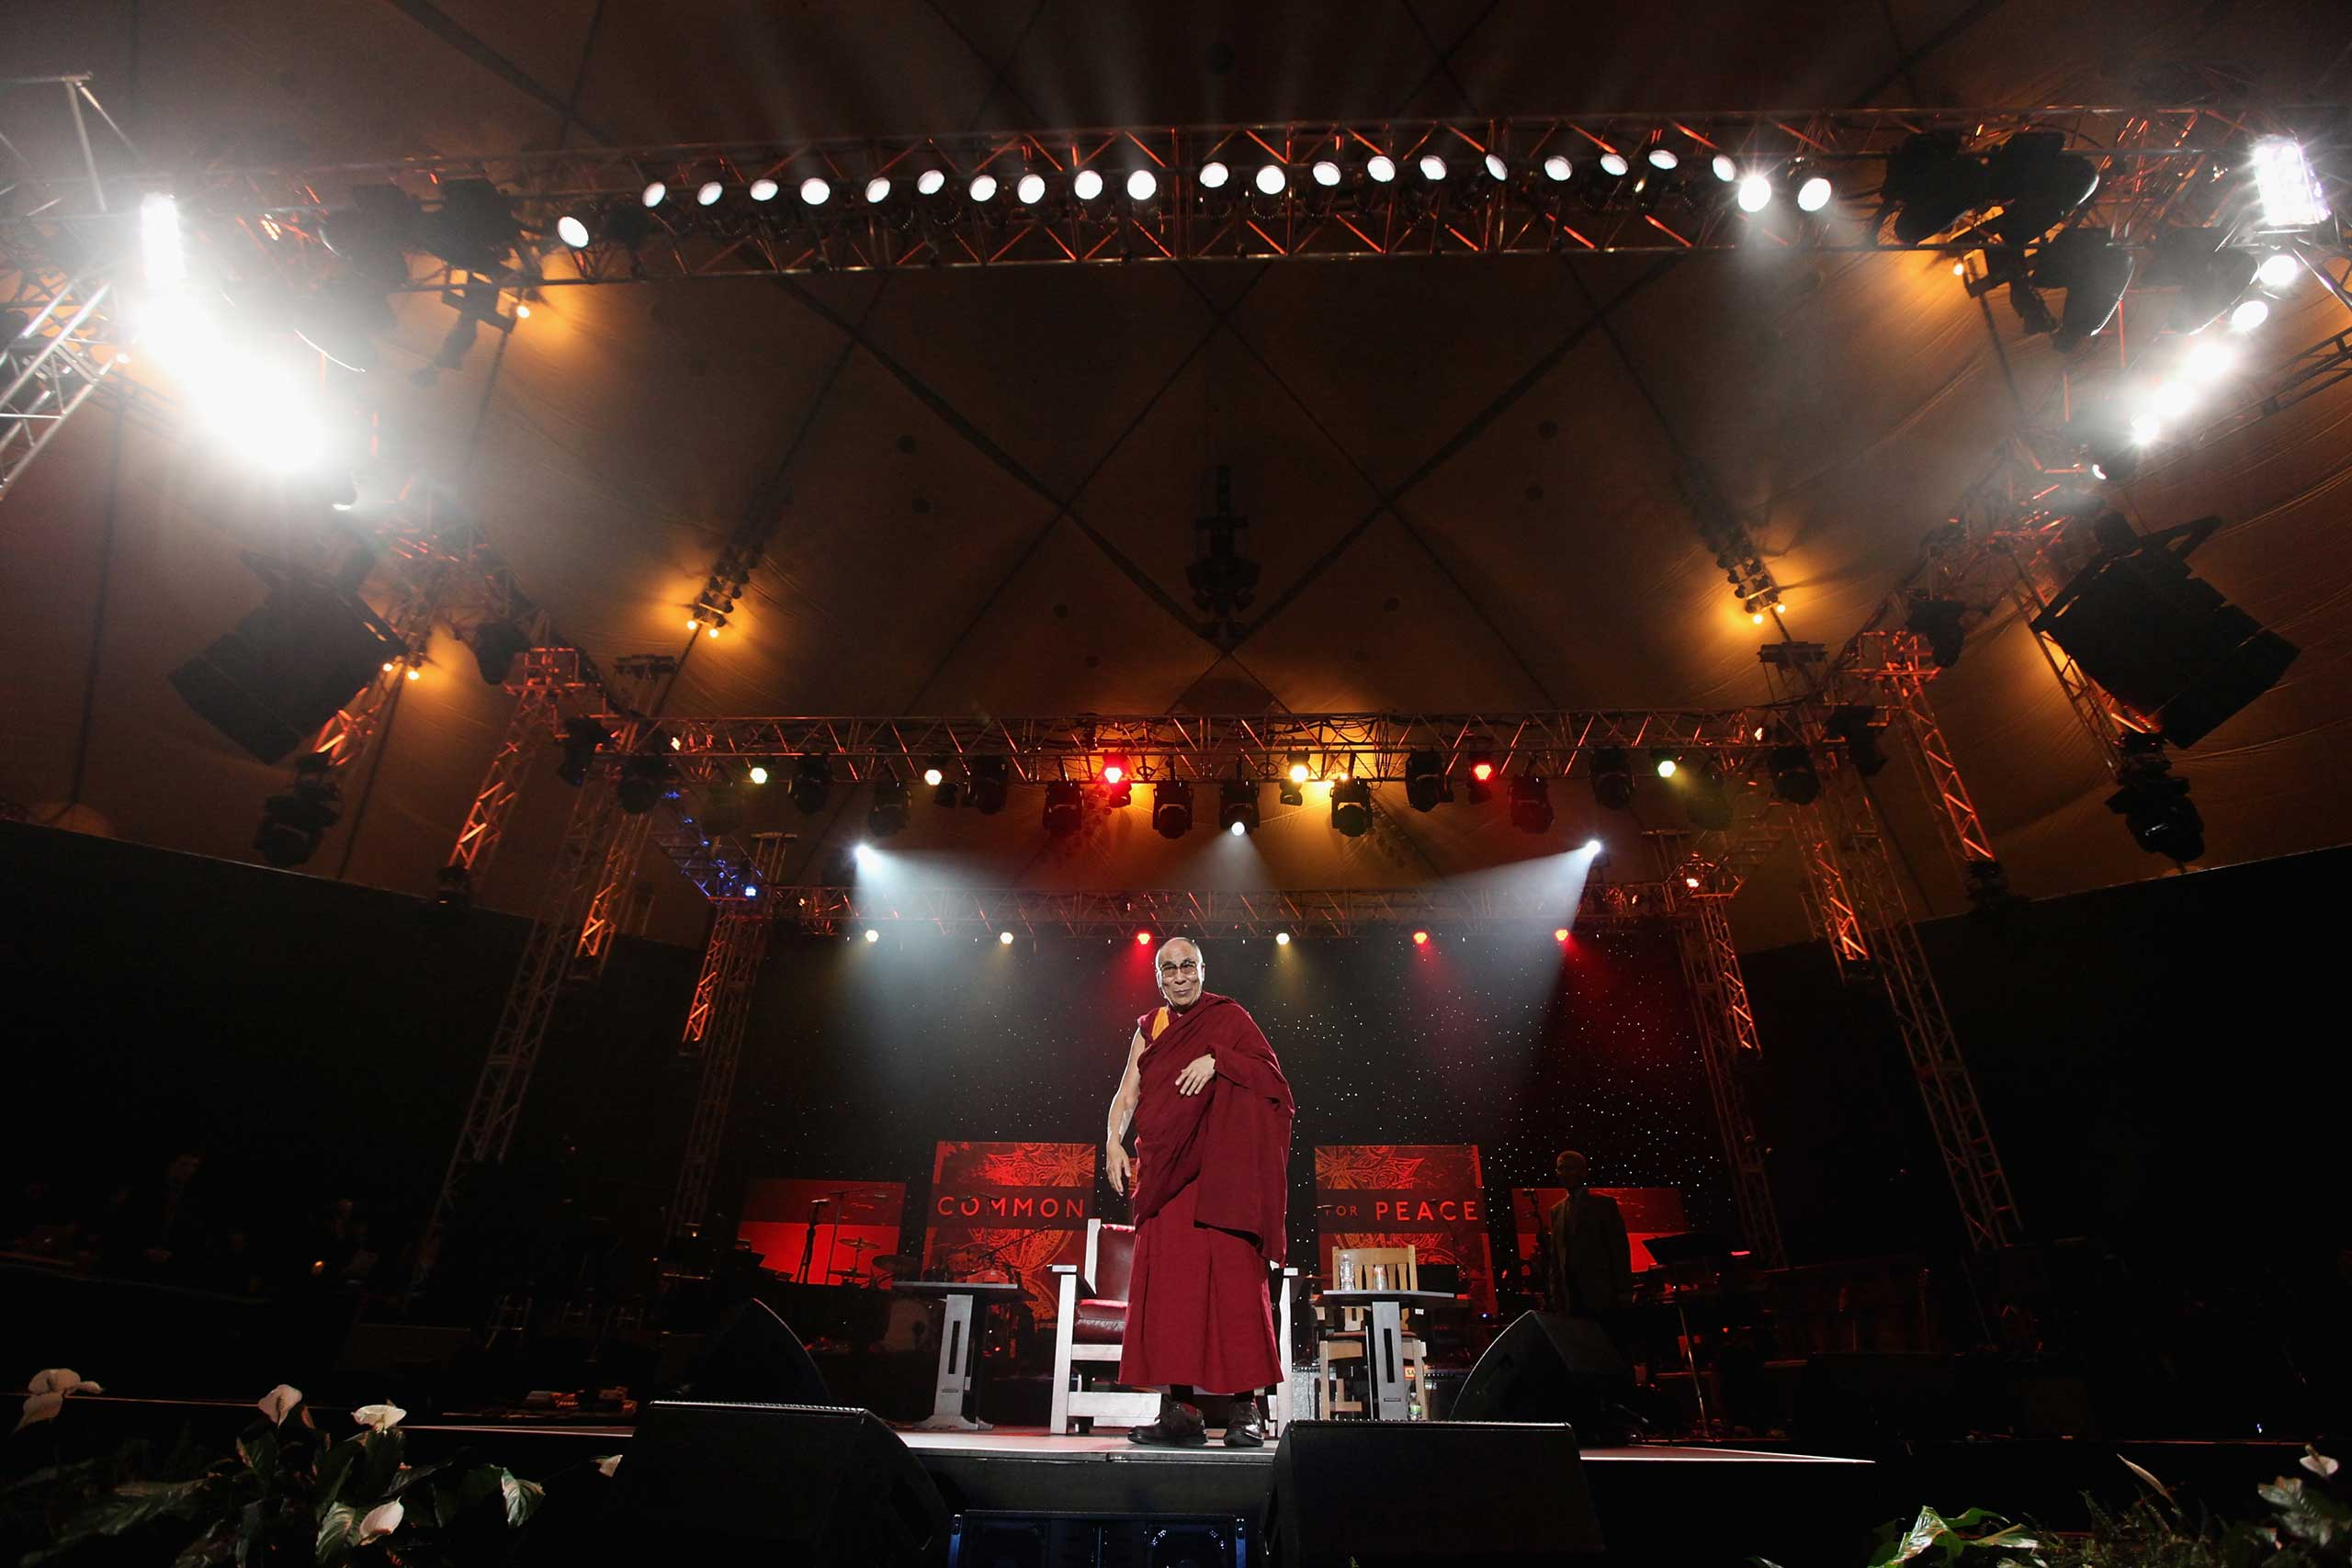 The Dalai Lama speaks onstage at the One World Concert at Syracuse University in New York in October 2012.